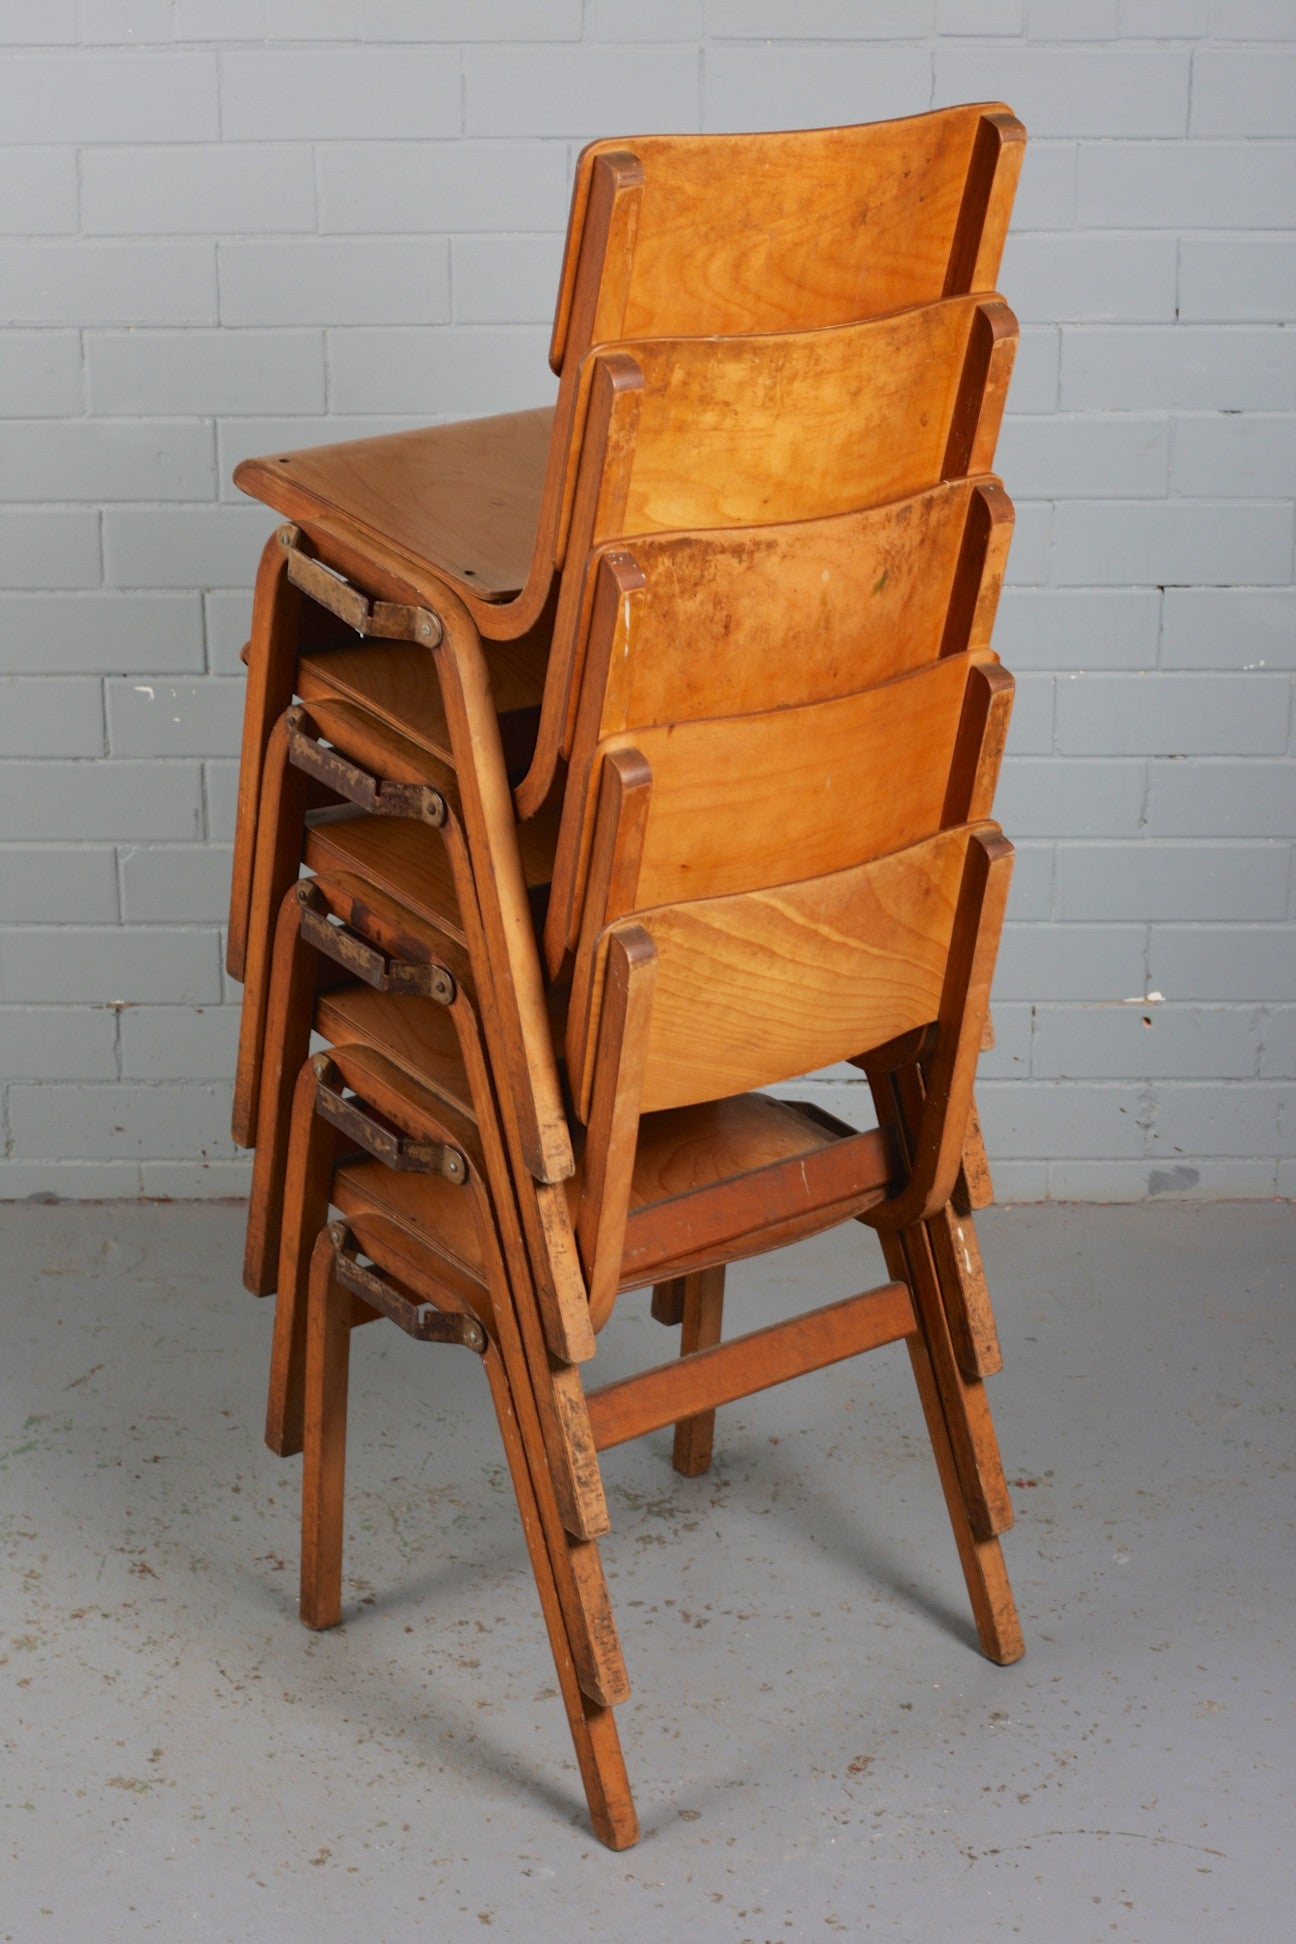 Wooden stacking and linking chairs for sale at Industrious Interiors, an online vintage furniture and homeware store based in Nottingham, England.